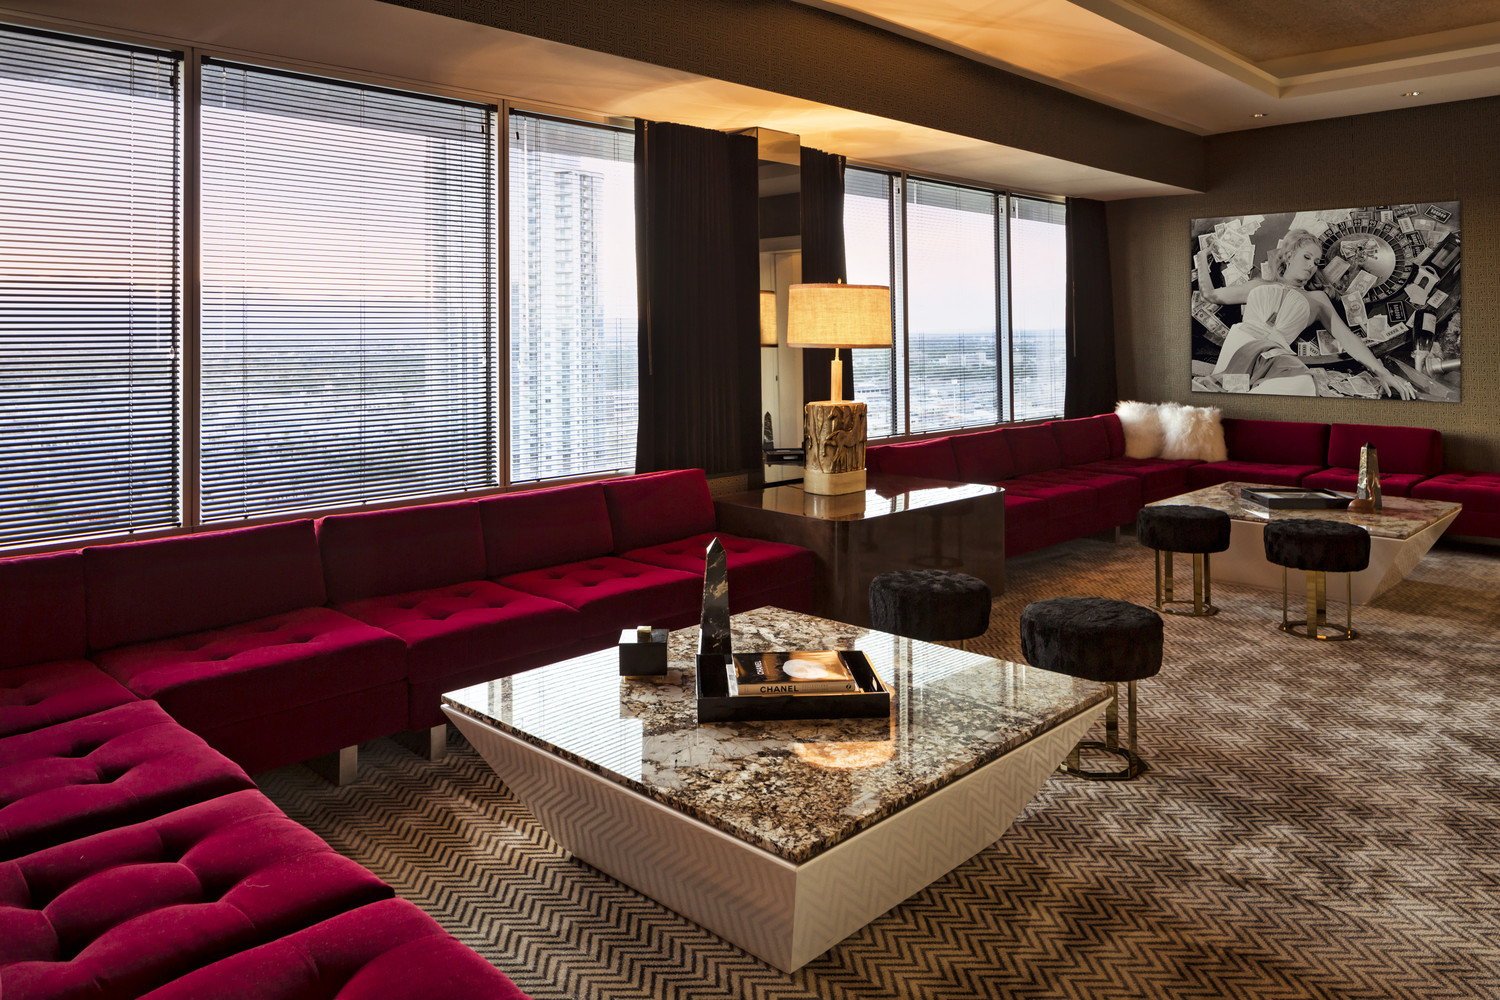 Extreme WOW Suite Designed By Multi Talented Artist Lenny Kravitz At W Las Vegas